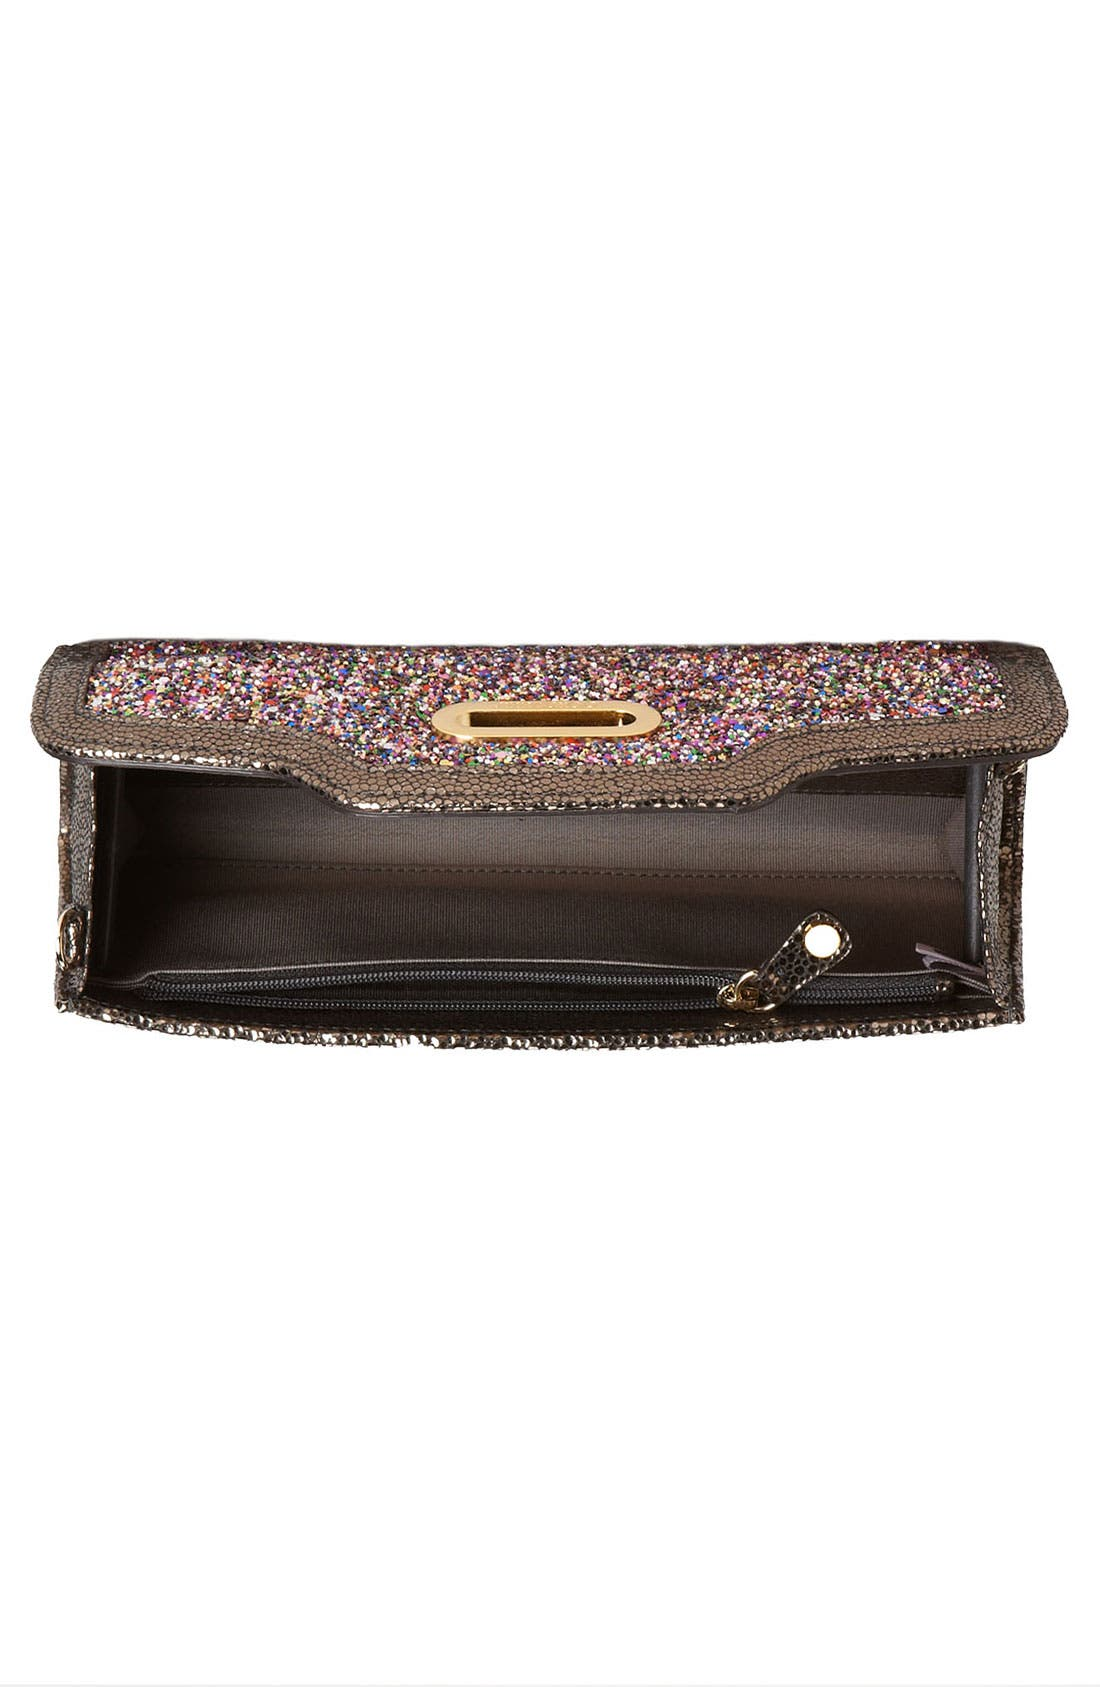 Alternate Image 3  - Jimmy Choo Glitter Clutch